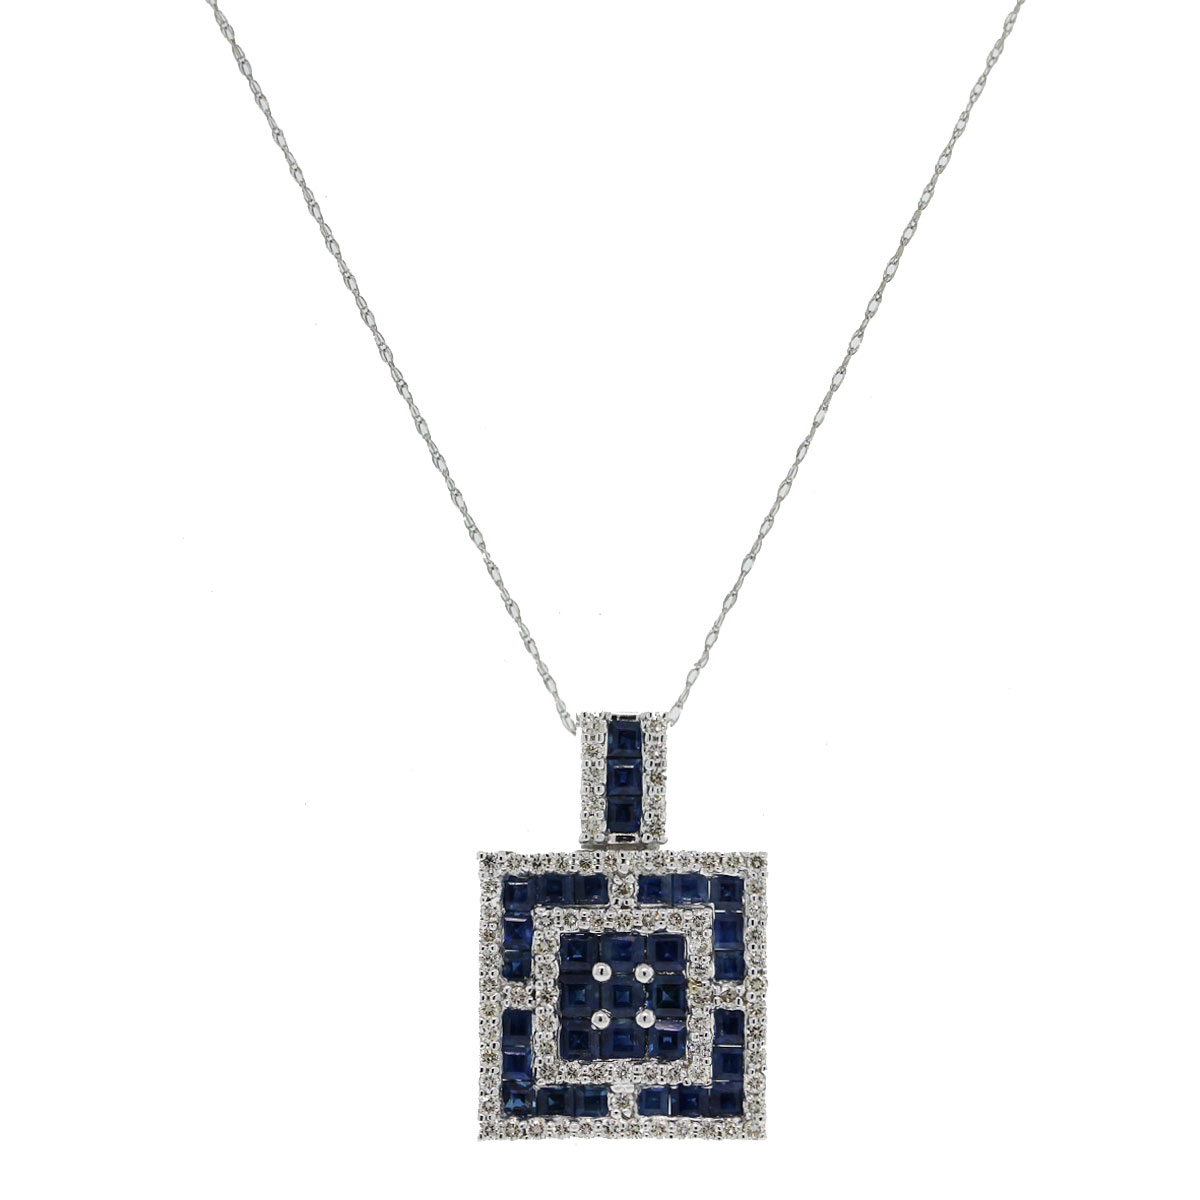 Check out this 18k Sapphire & Diamond Square Pendant on 10k White Gold Chain